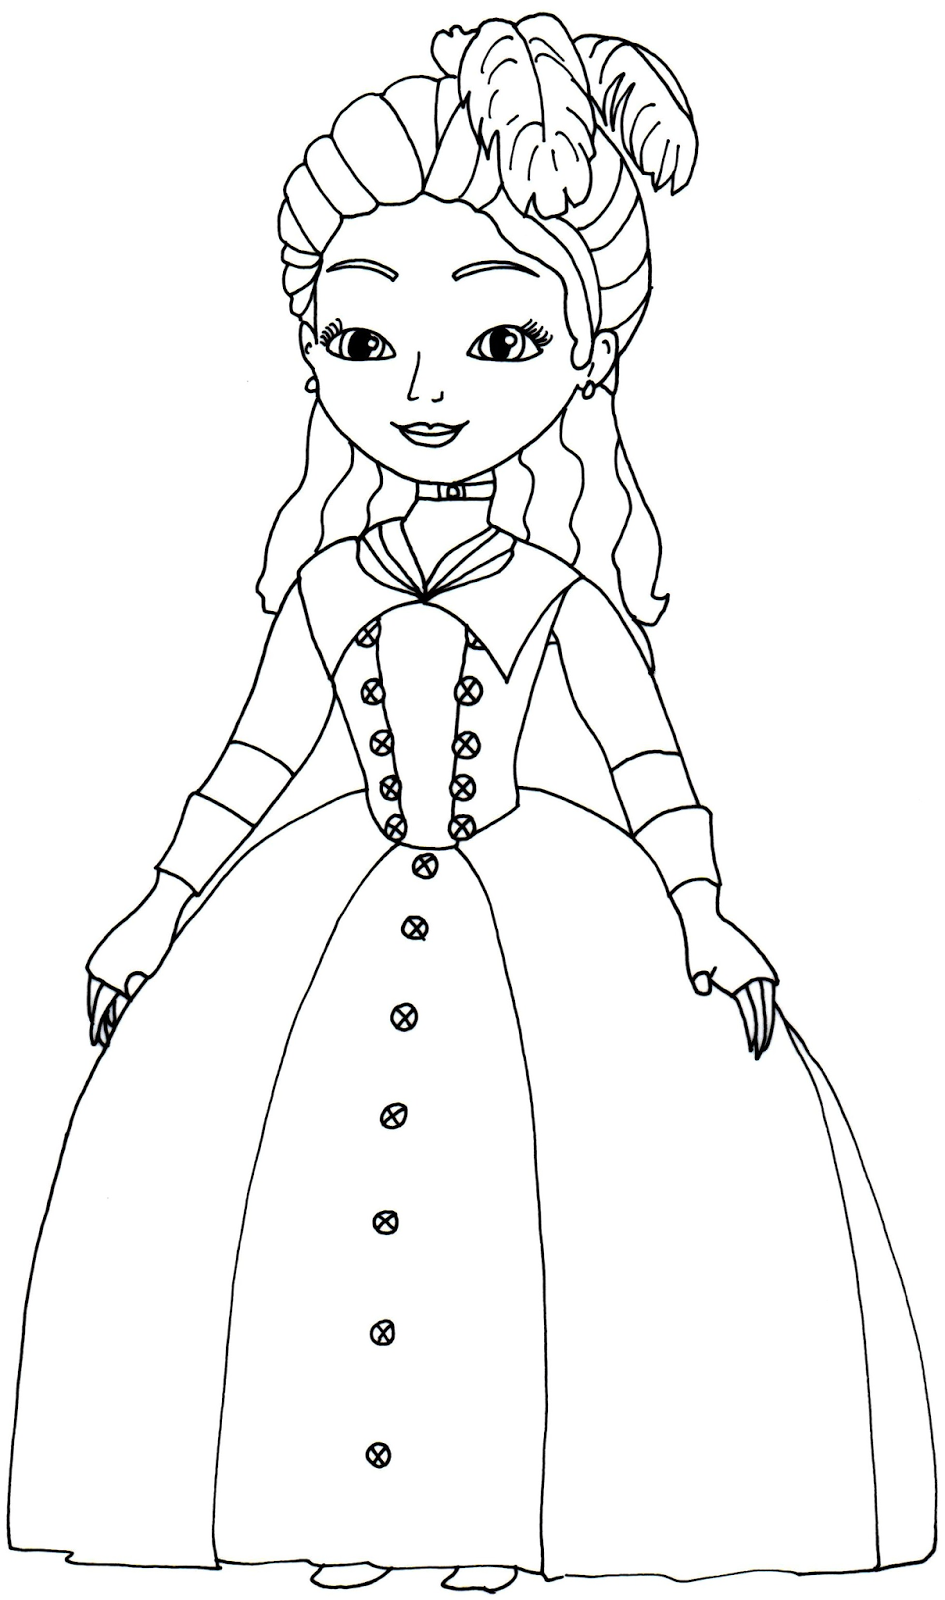 Ausmalbilder Prinzessin Sofia : Sofia The First Coloring Pages Clio Eliyah S Board Pinterest